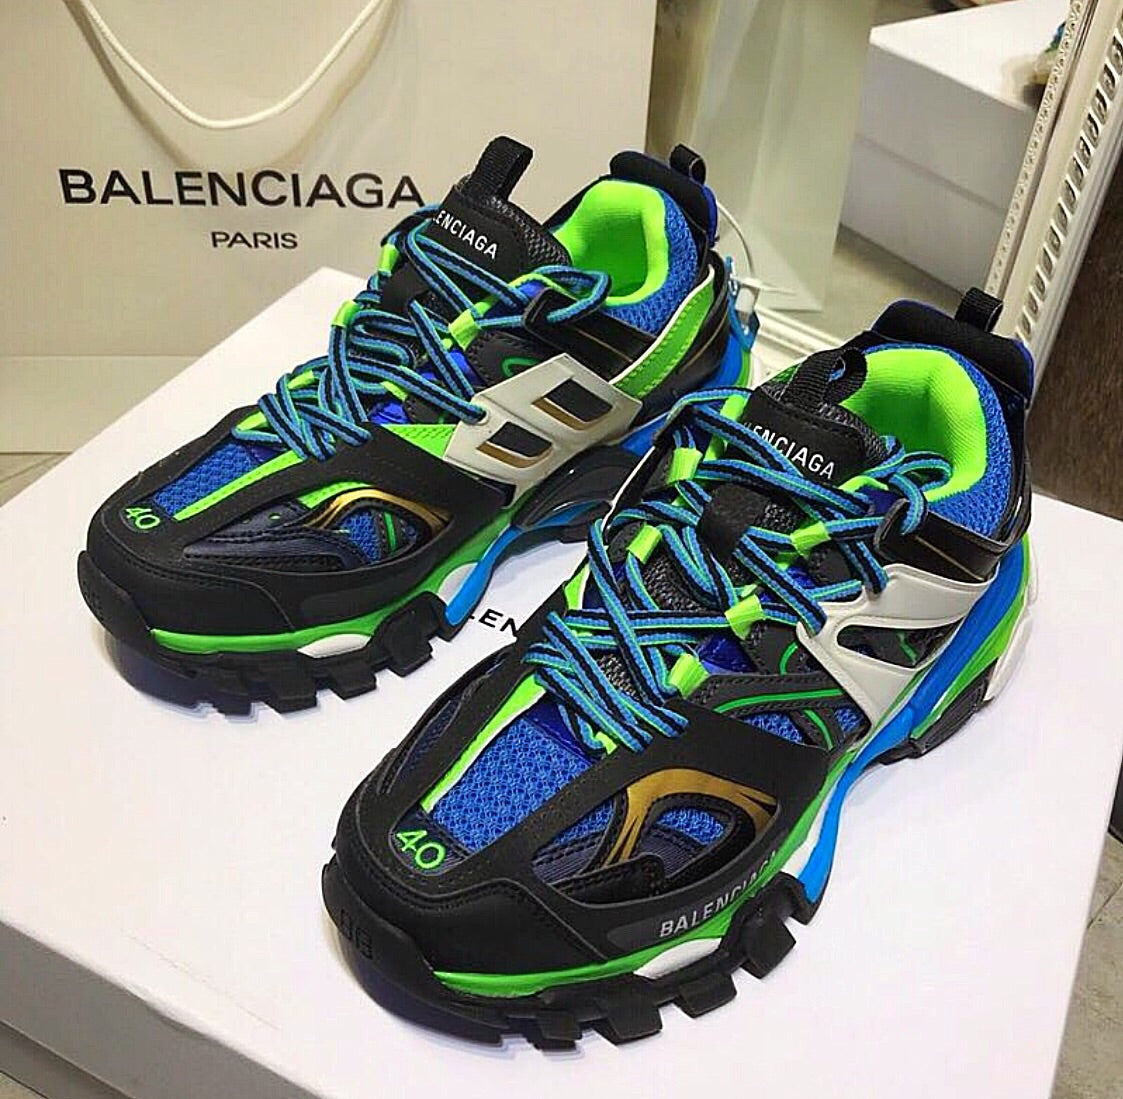 balenciaga track 3 0 LED review yeezydaily net